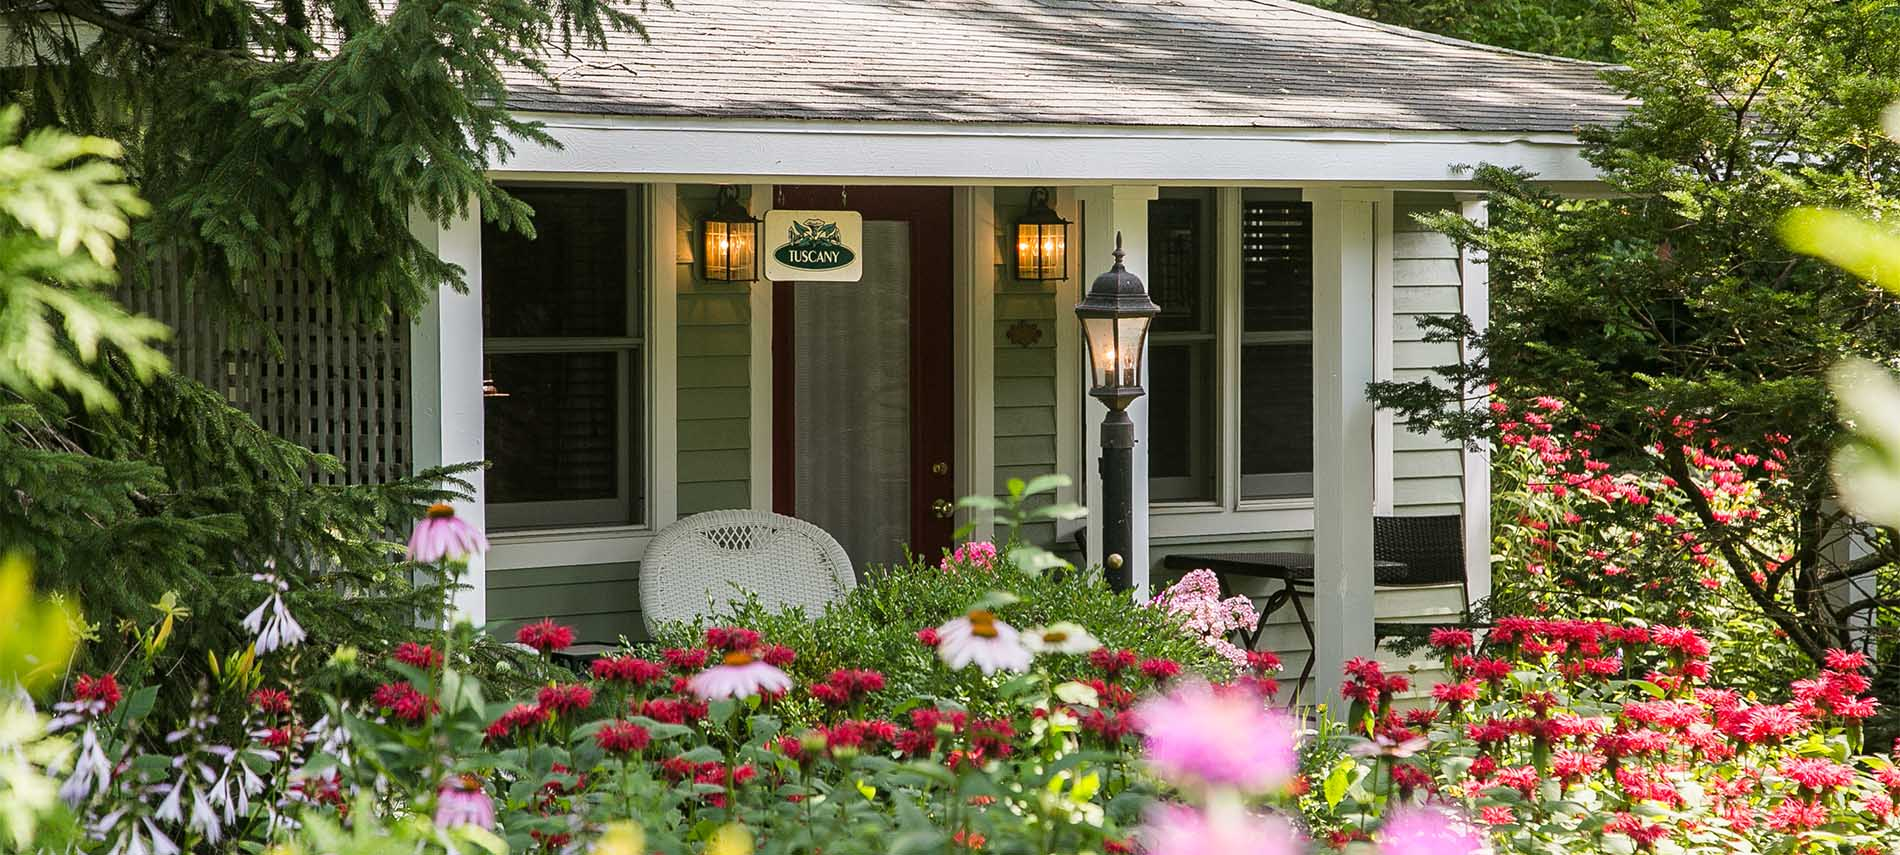 hidden garden cottages suites saugatuck michigan rh hiddengardencottages com South Haven Michigan Holland MI